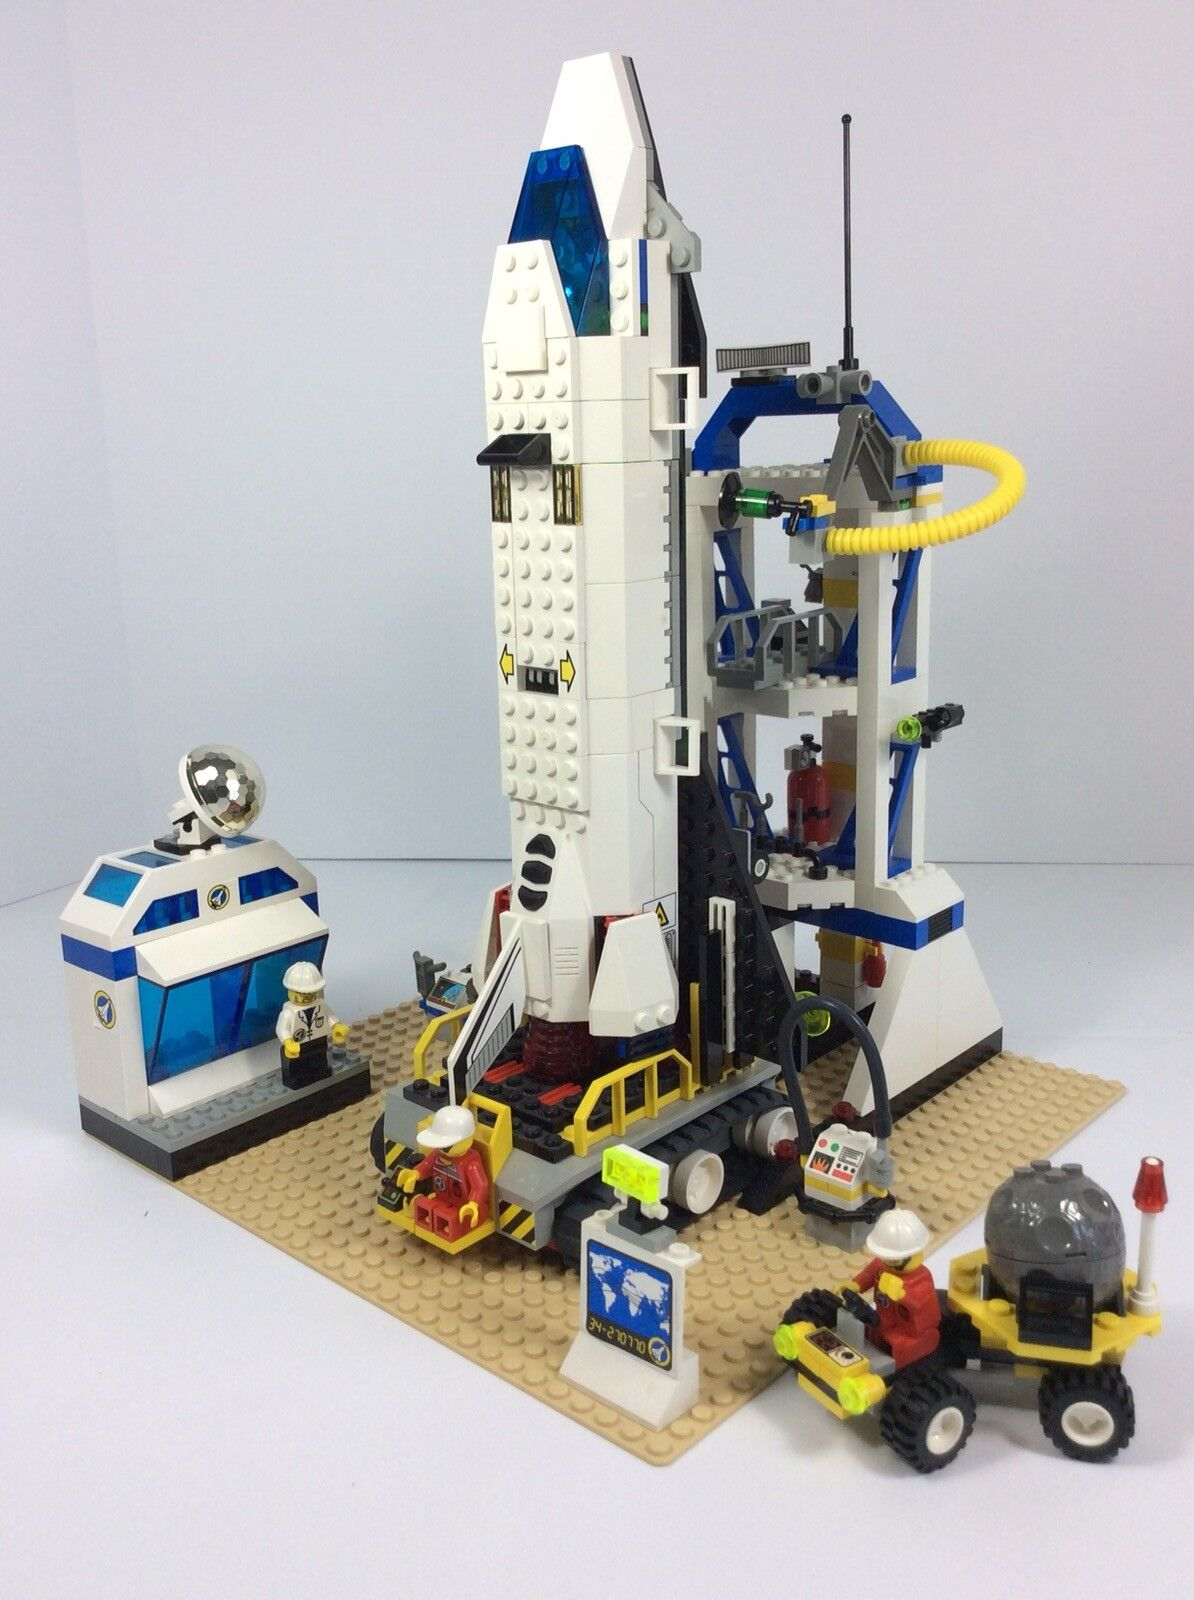 Lego System Mission Control ( 6456) 100% Pieces Complete w/ Box and Instructions